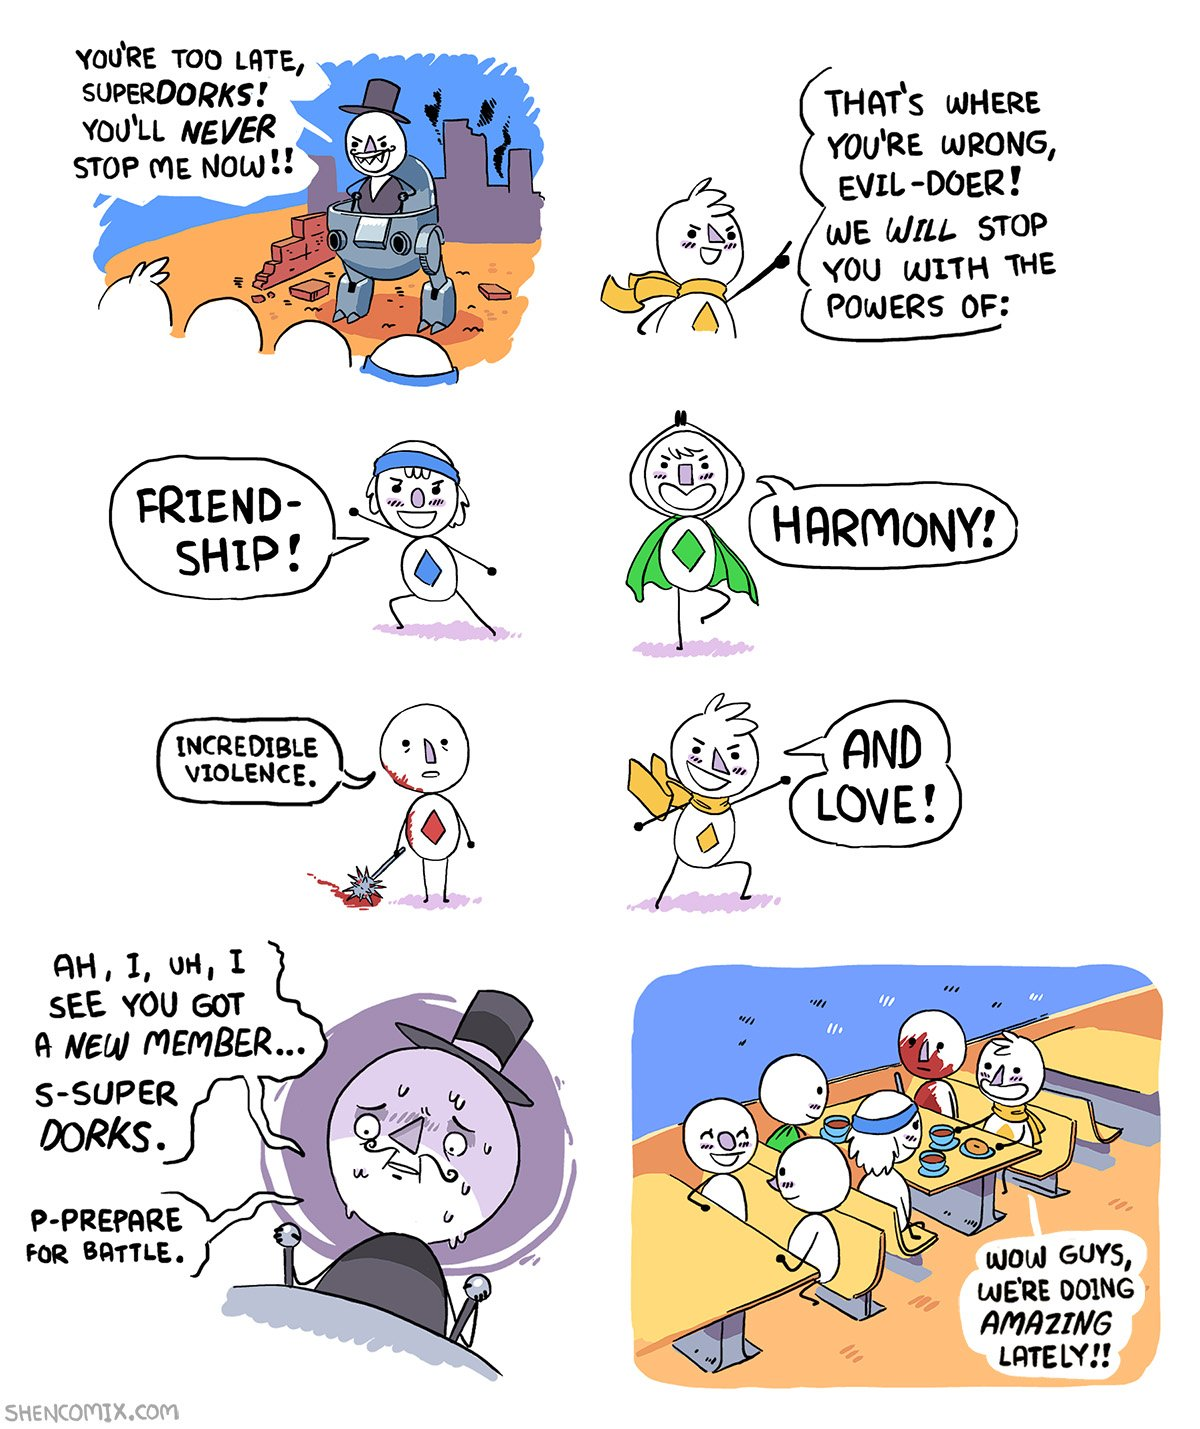 RT @shenanigansen: https://t.co/2iS0GjAzLj